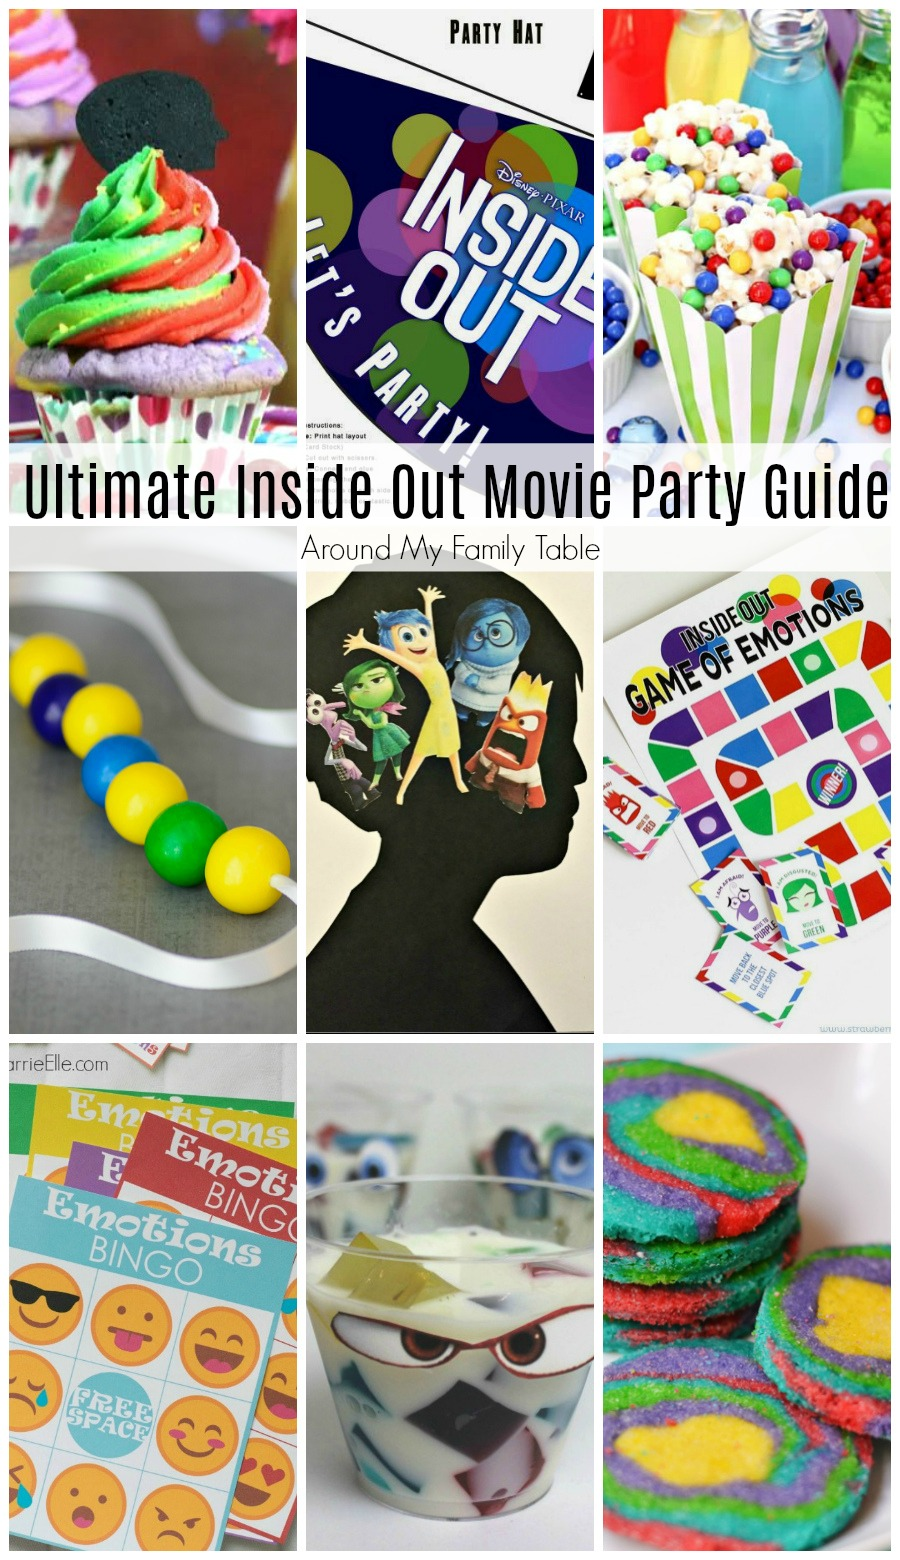 Disney's Inside Out is such a popular movie and kids are still begging for all the Inside Out merchandise and even asked for a party! So, I created the Ultimate Inside Out Movie Party Guide to help in my party planning. via @slingmama